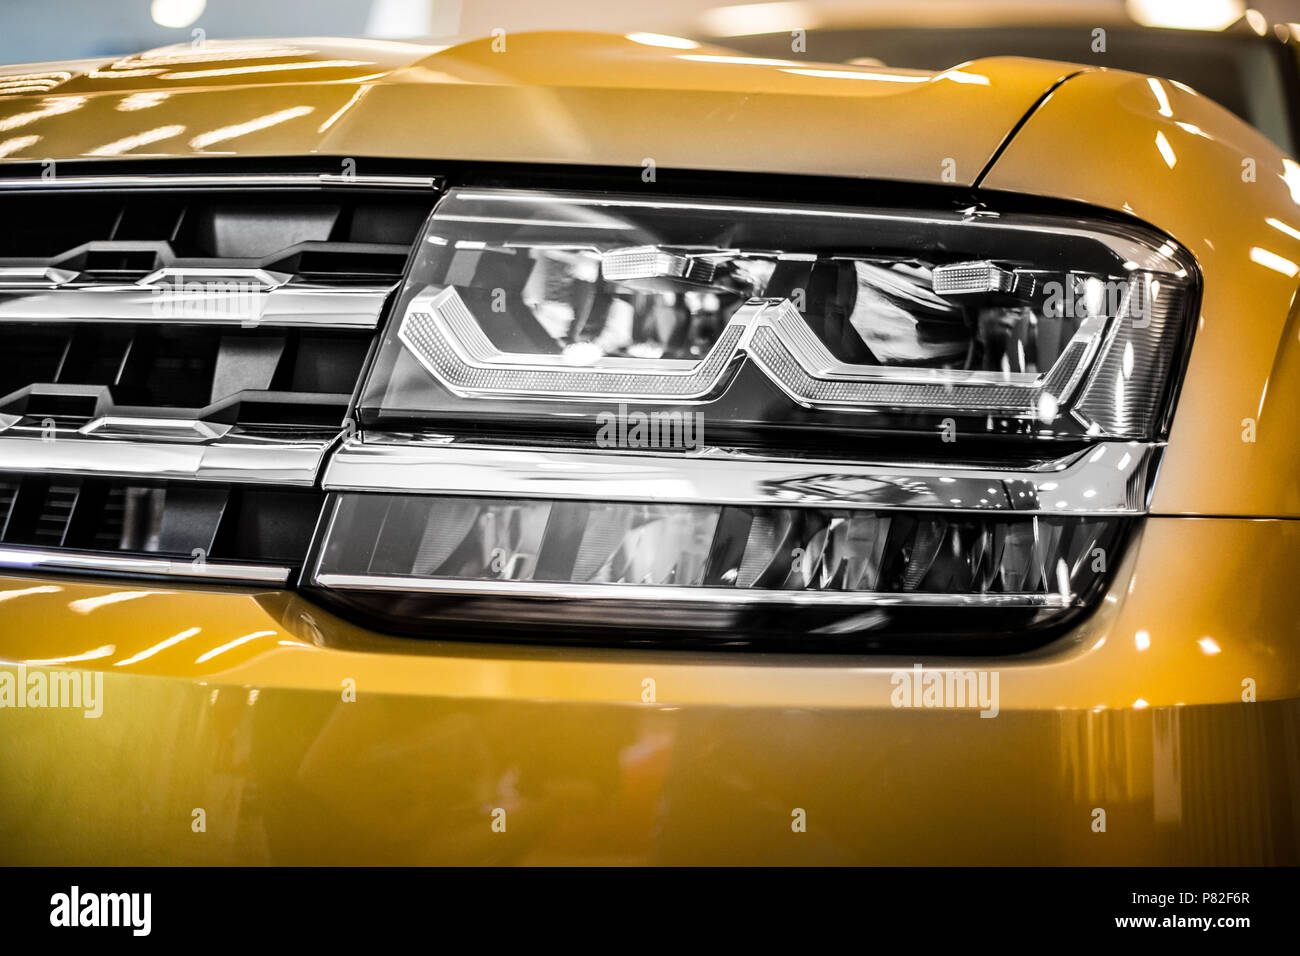 headlight of large SUV modern car with led and xenon optics - Stock Image